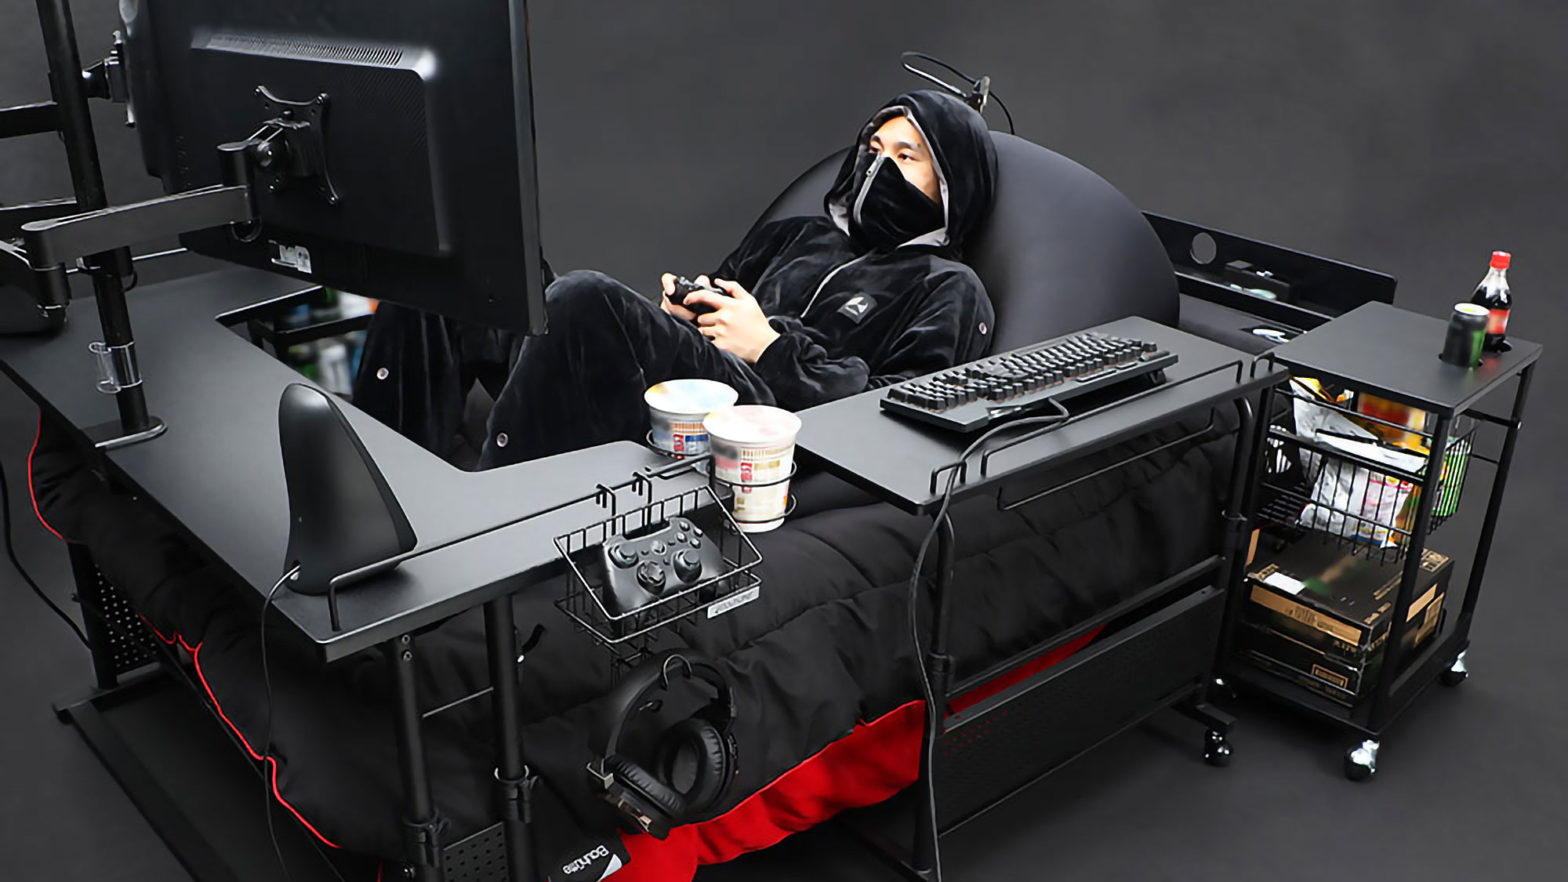 Bauhütte Gaming Bed Concept Setup